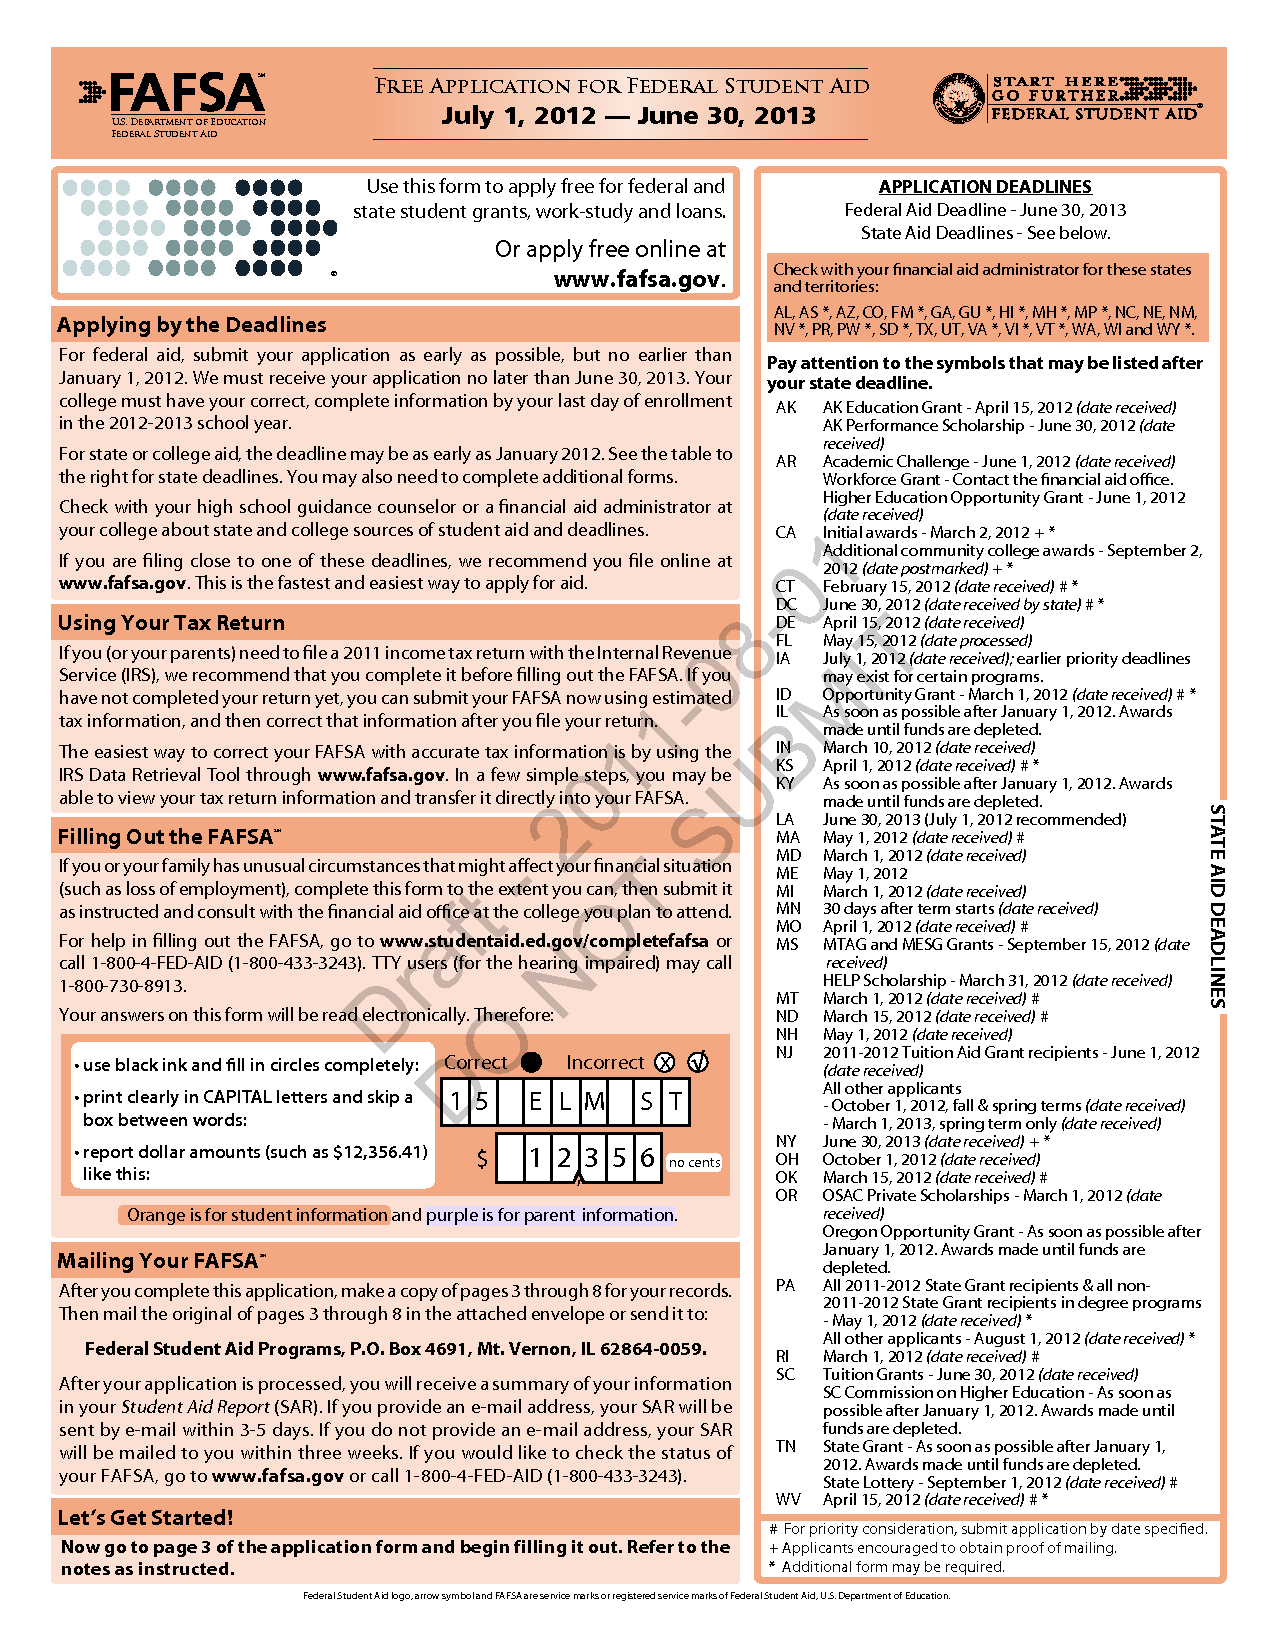 Printables Fafsa Worksheet printable fafsa worksheet bloggakuten 2016 intrepidpath